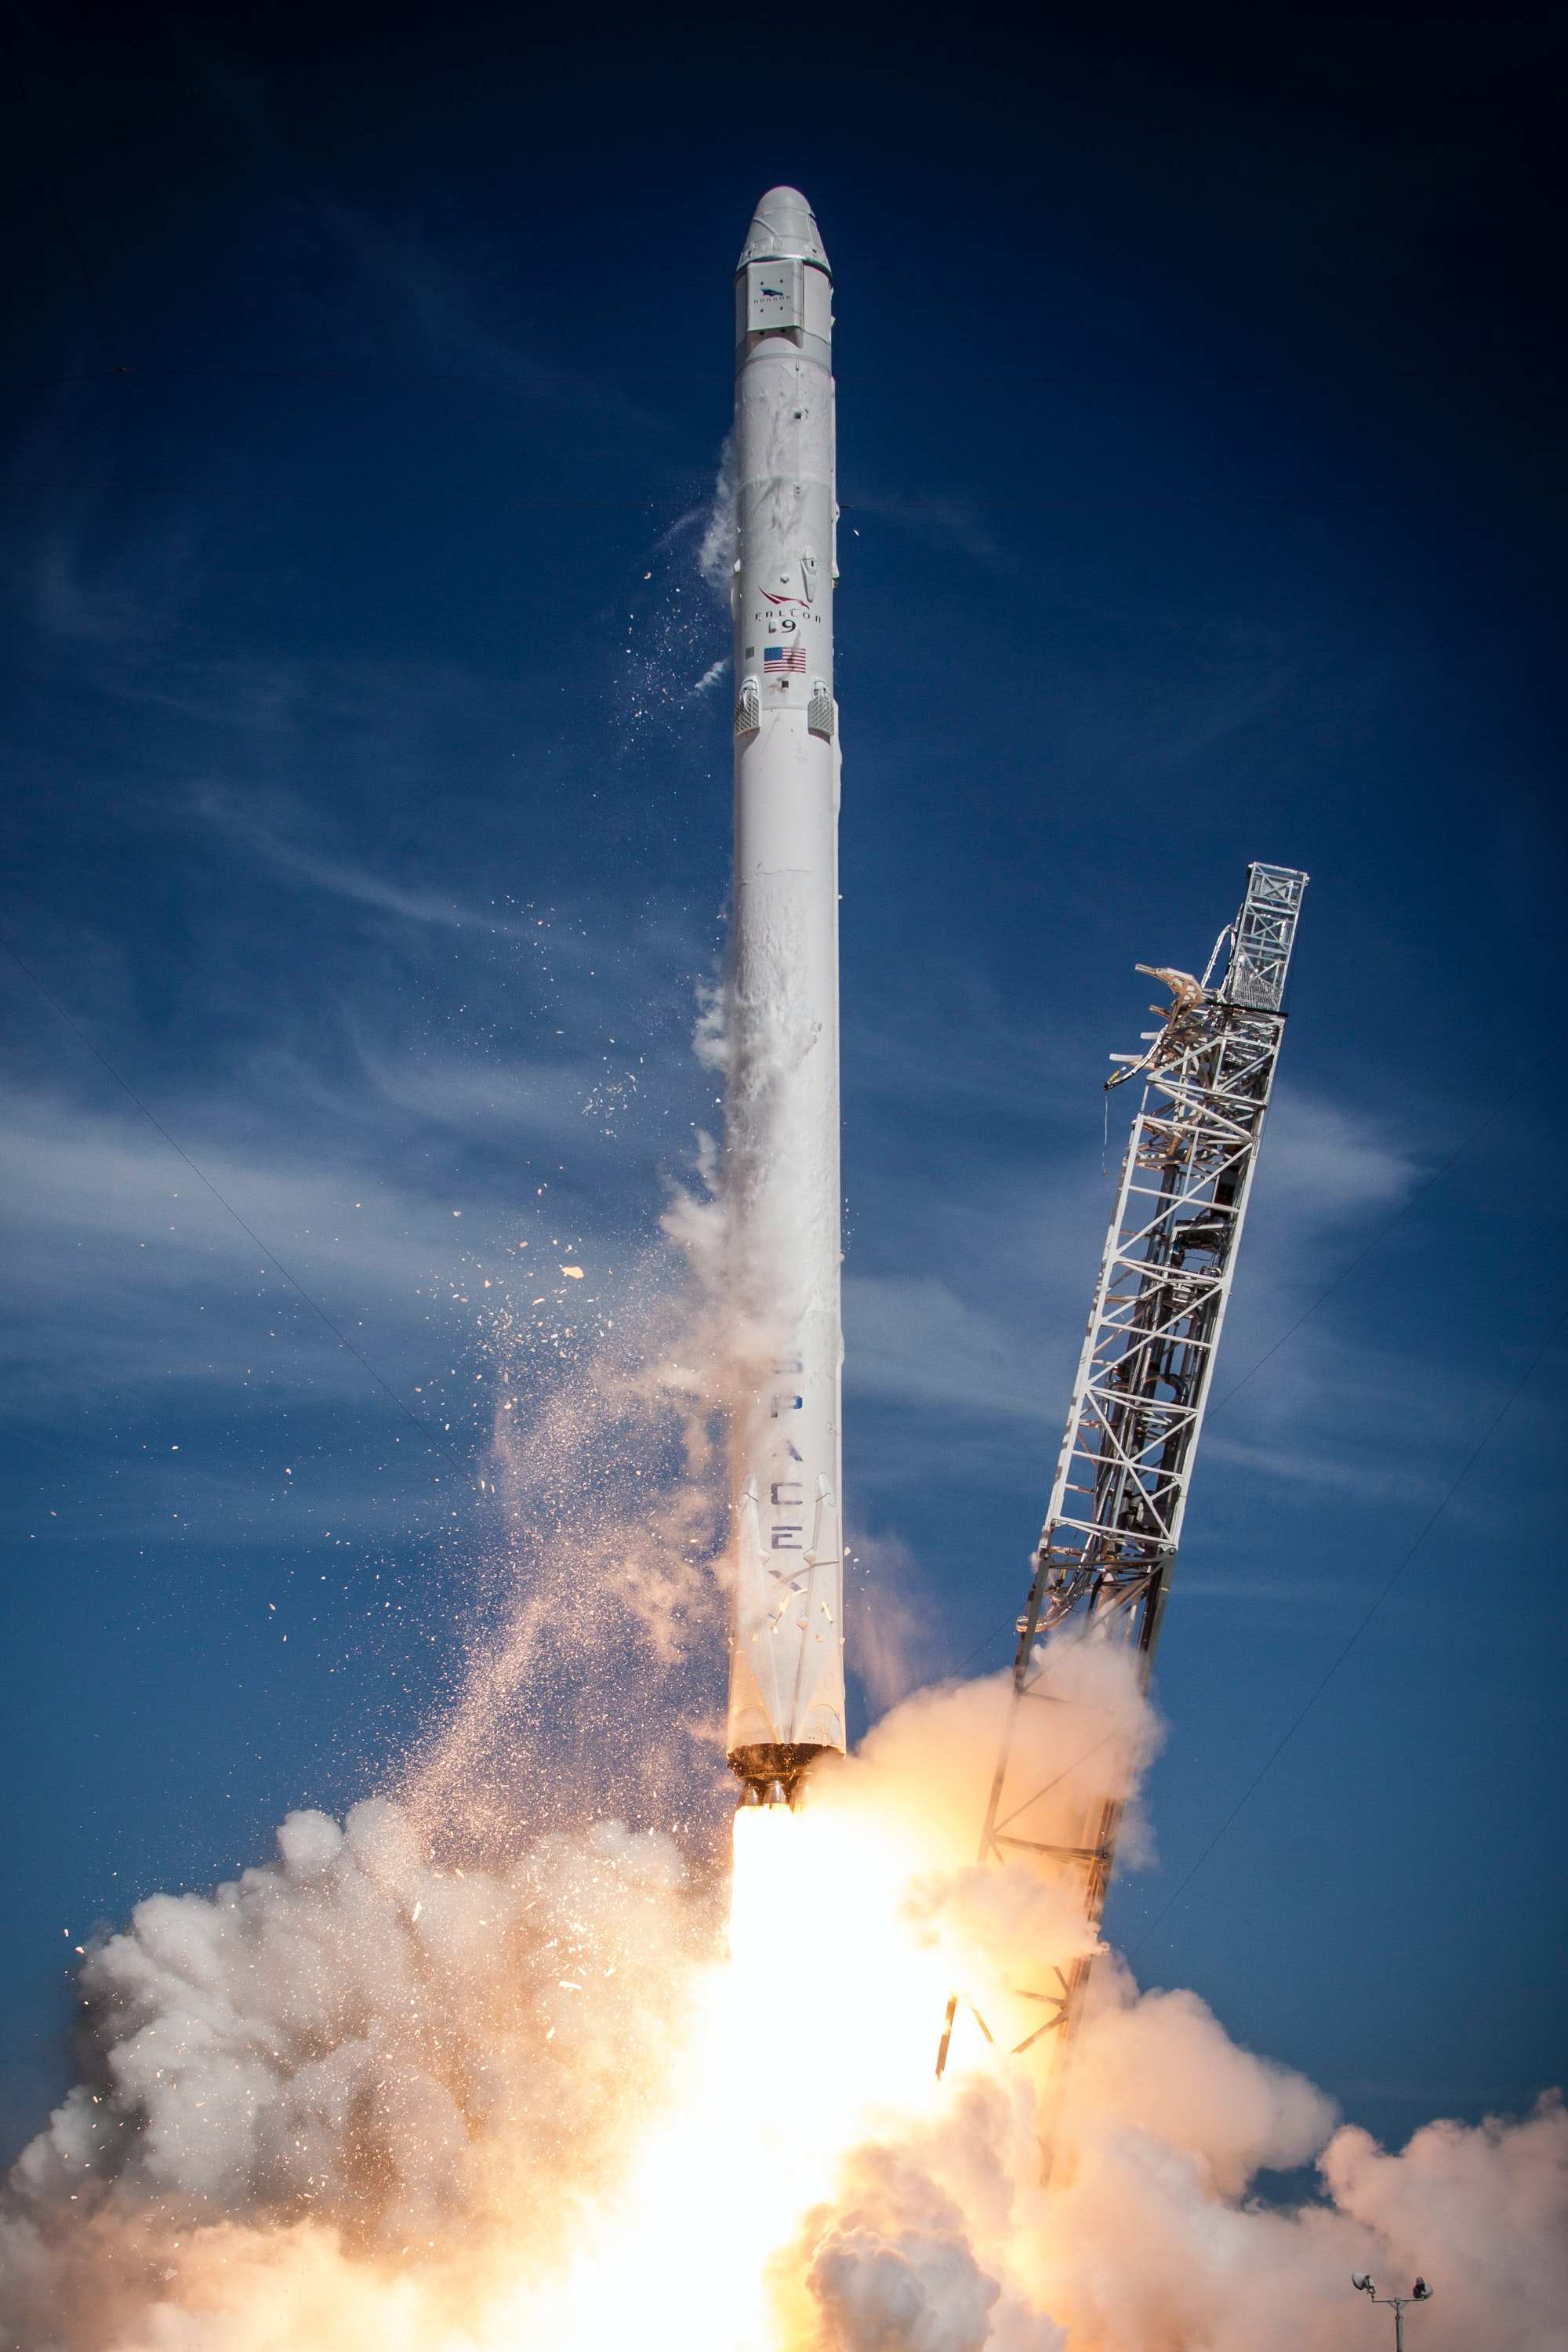 Free Stock Photo From Spacex 183 Pexels